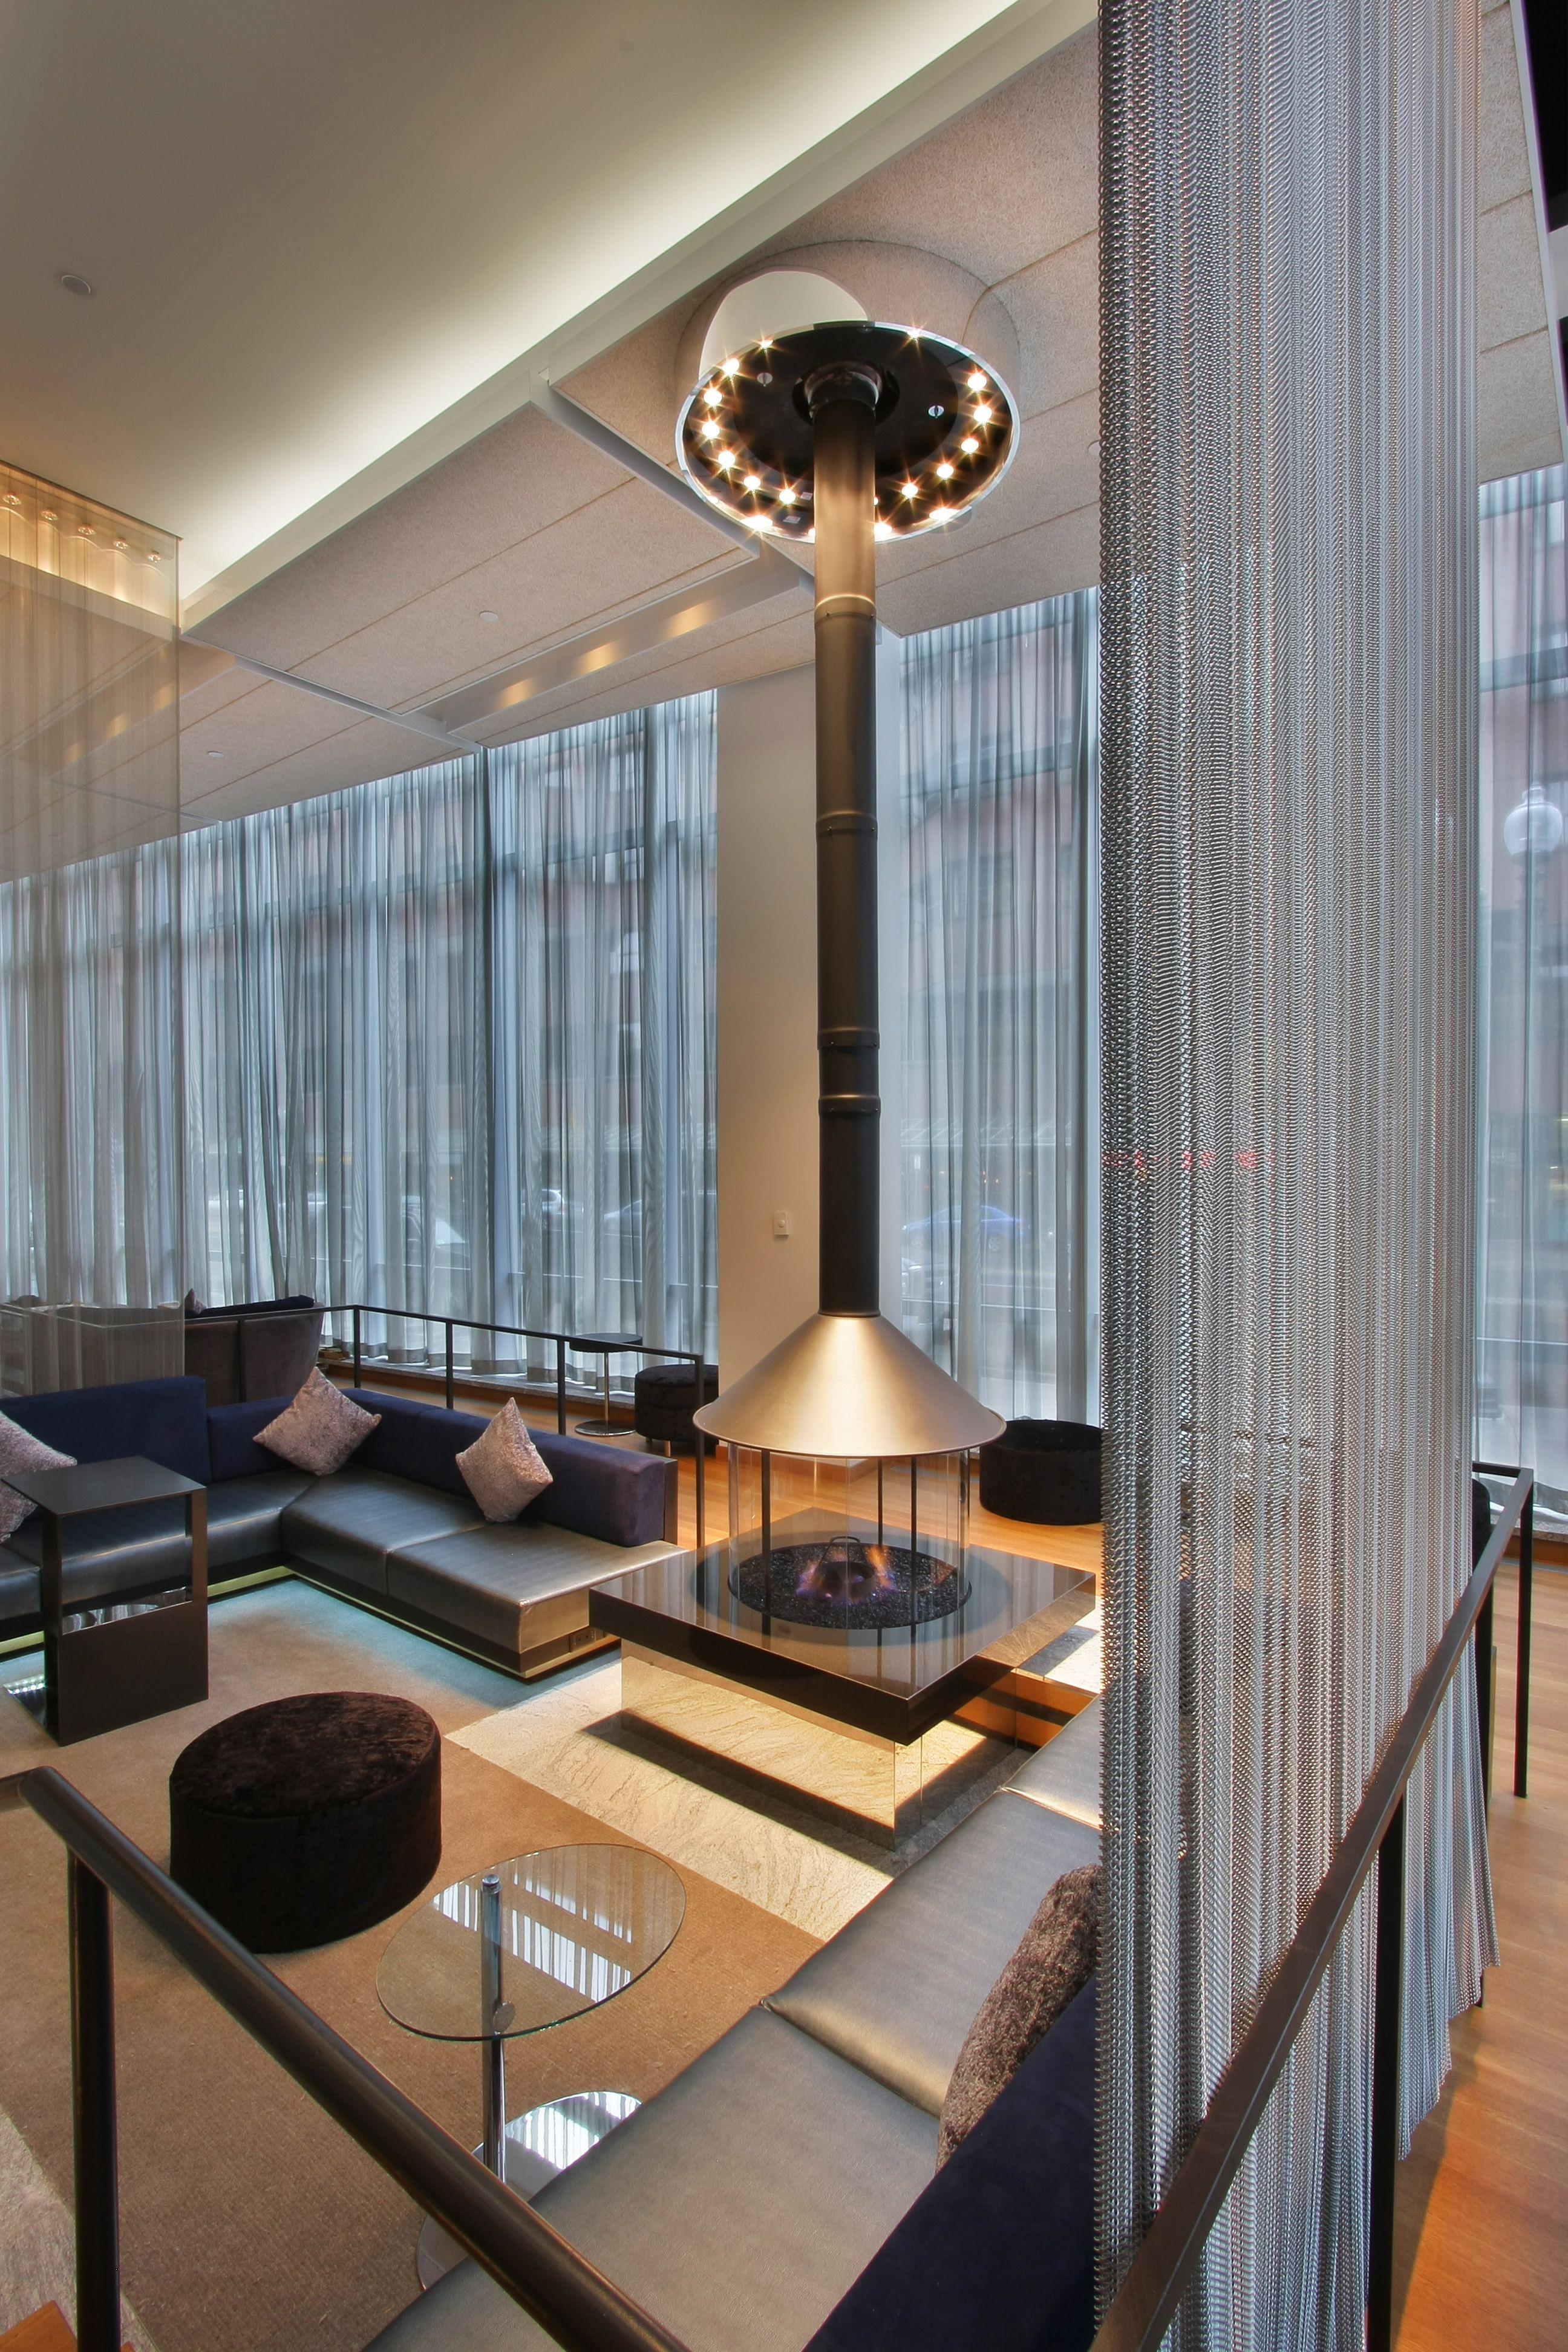 Decorative Firescreens And Wire Mesh Curtains Create A